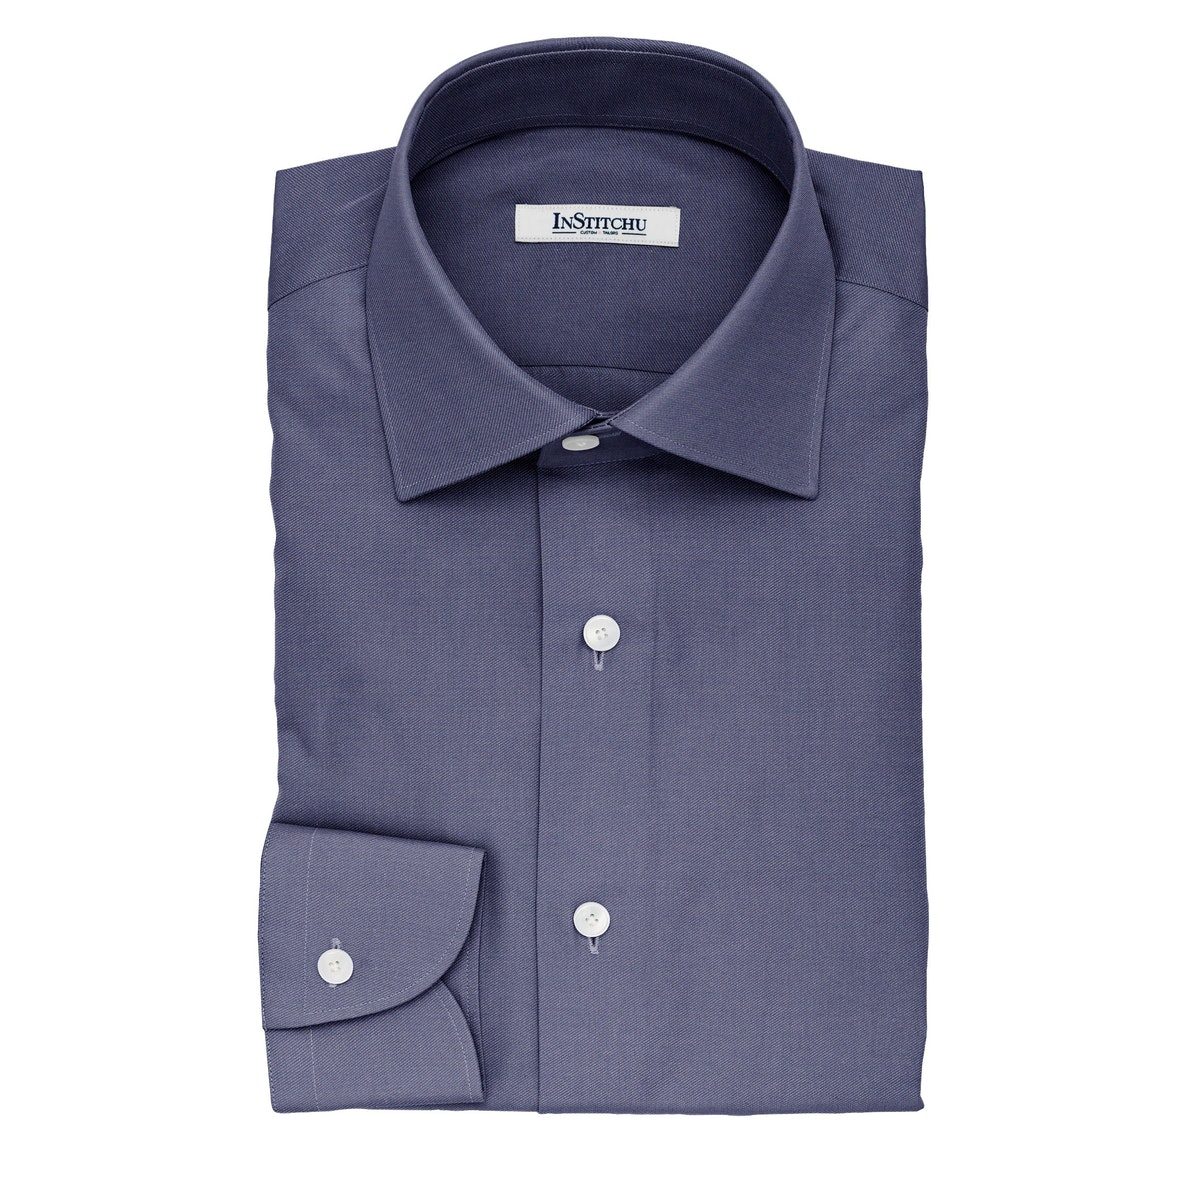 InStitchu Collection The Kafka Denim Blue Non-Iron Cotton Shirt